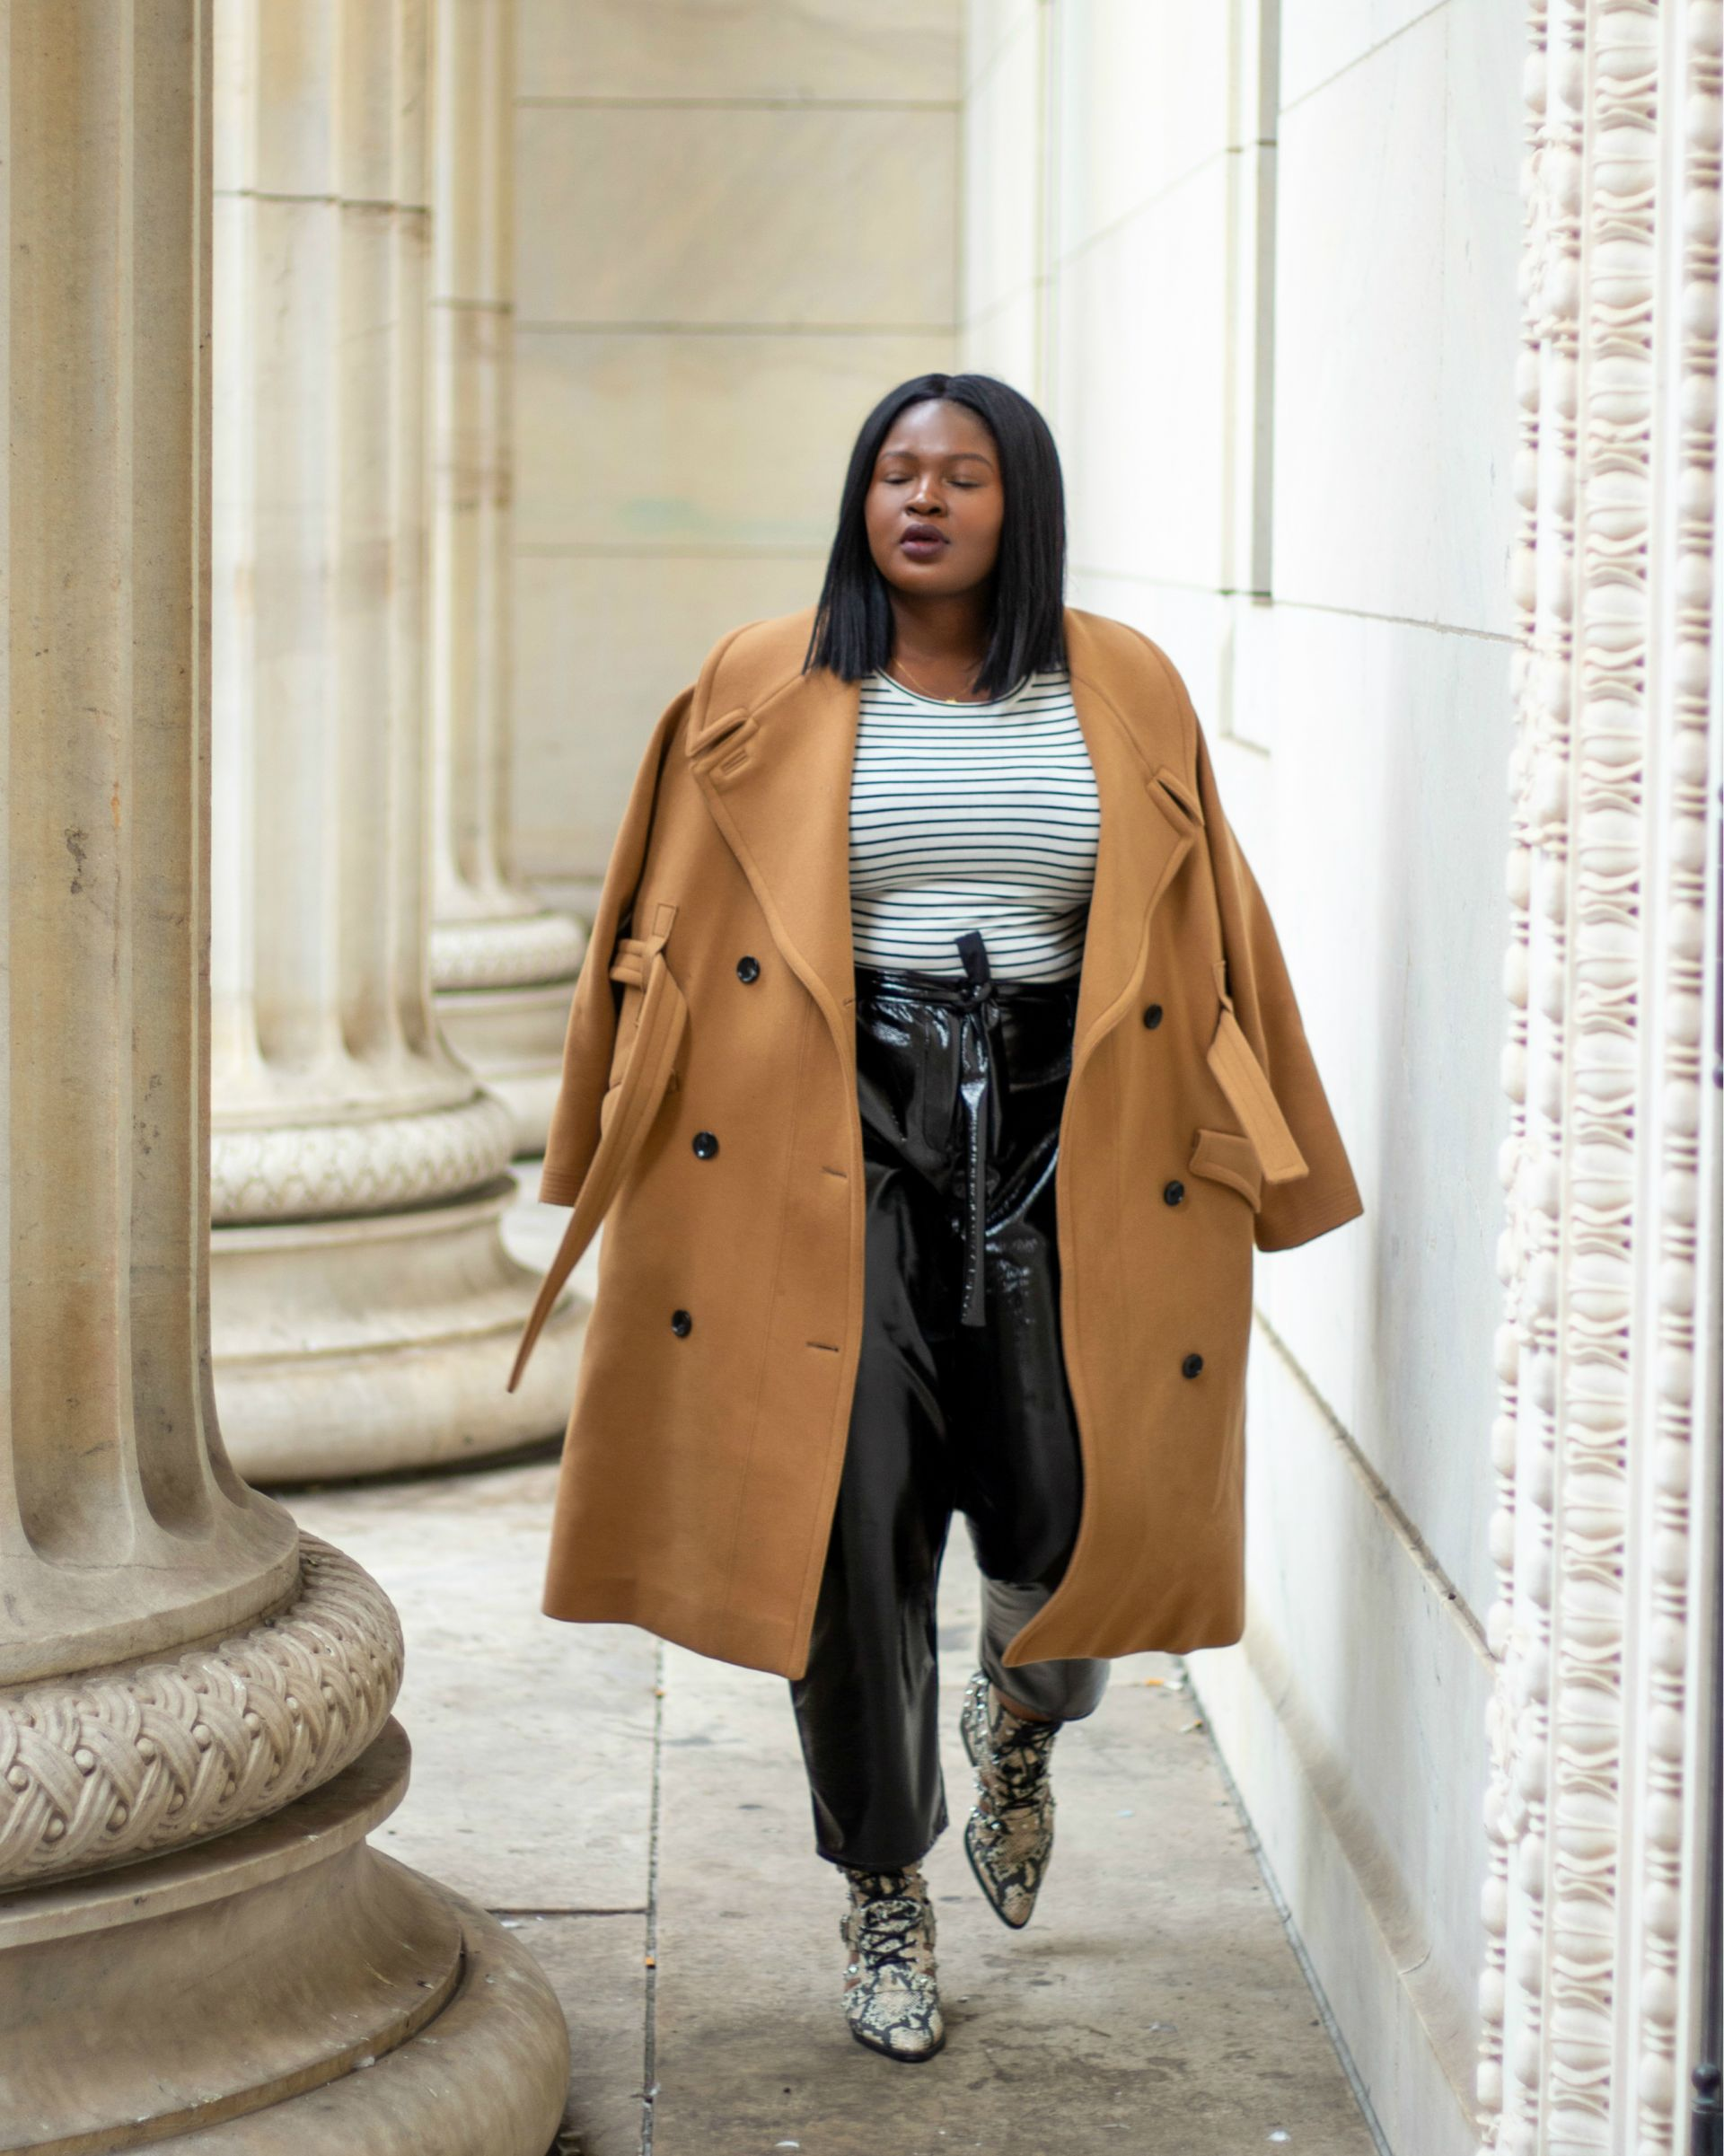 NORDSTROM ANNIVERSARY SALE 2020 SHOP WITH ME + BEST CURVY GIRL PICKS from supplechic a fashion and lifestyle blog based in Baltimore